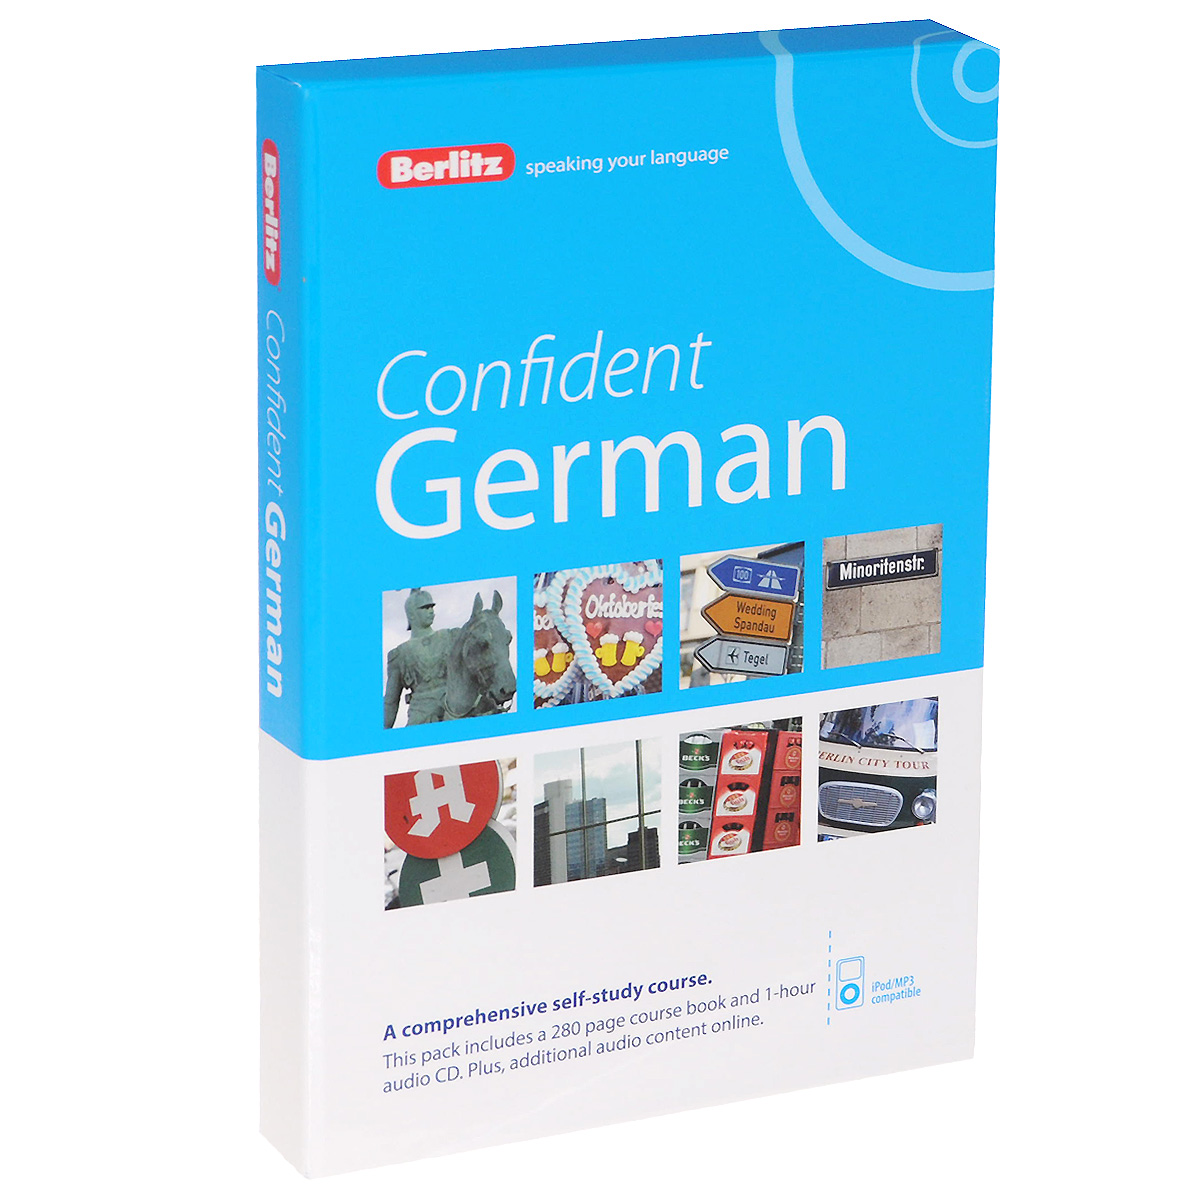 Confident German (+CD) get wise mastering grammar skills mastering math skills mastering vocabulary skills mastering writing skills